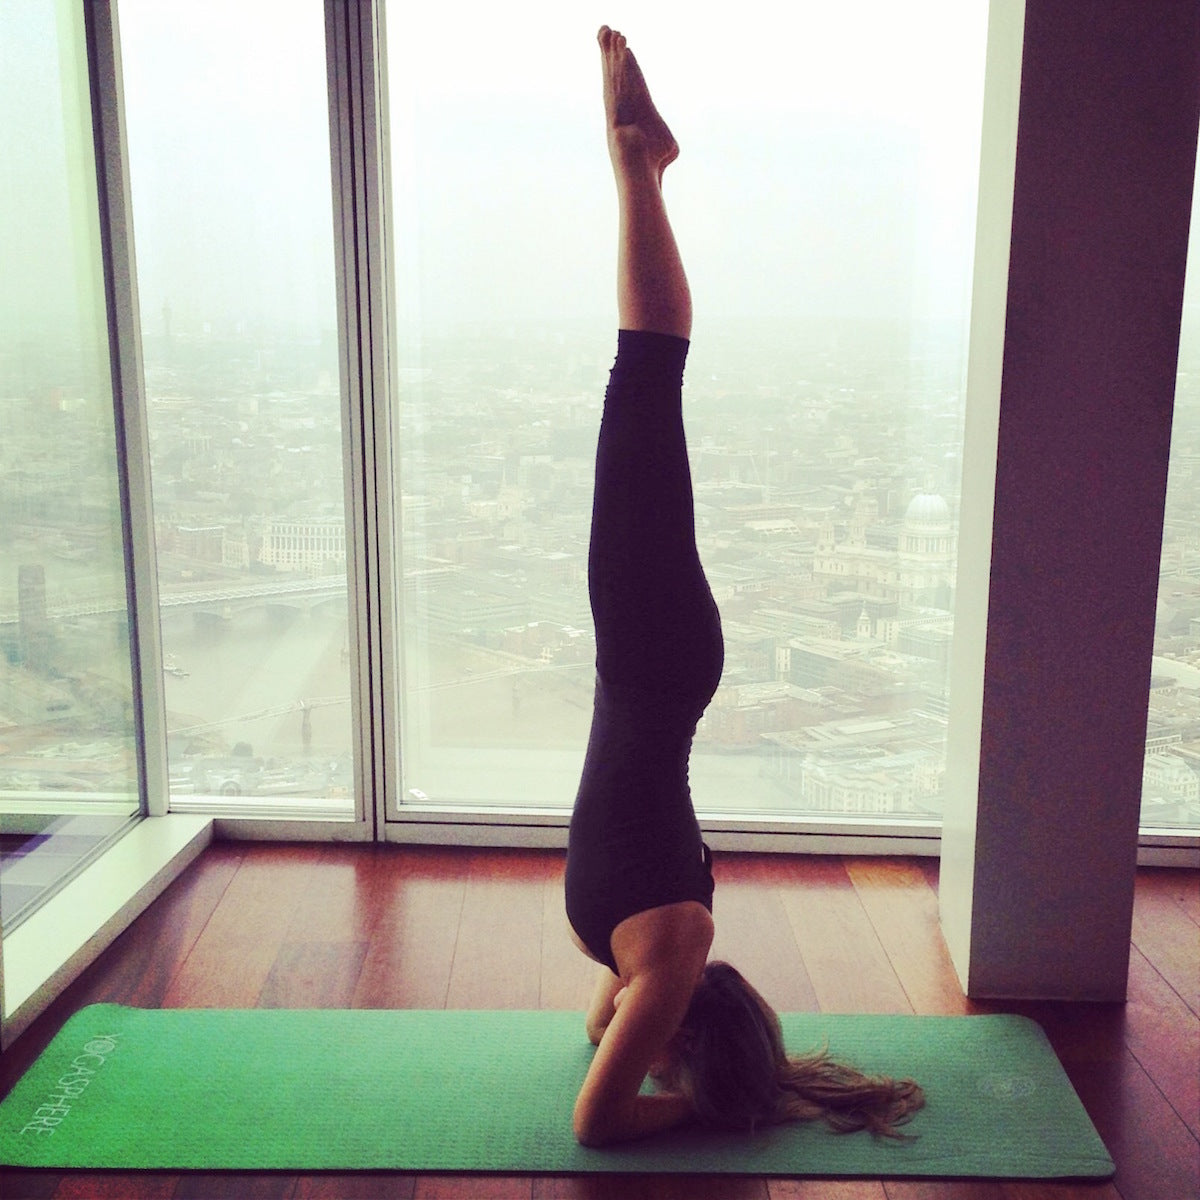 We Tried Out An Awesome Yoga Class At The Top Of Western Europes Tallest Building Shard In London And Got A Whole New View On As Well Our Fab